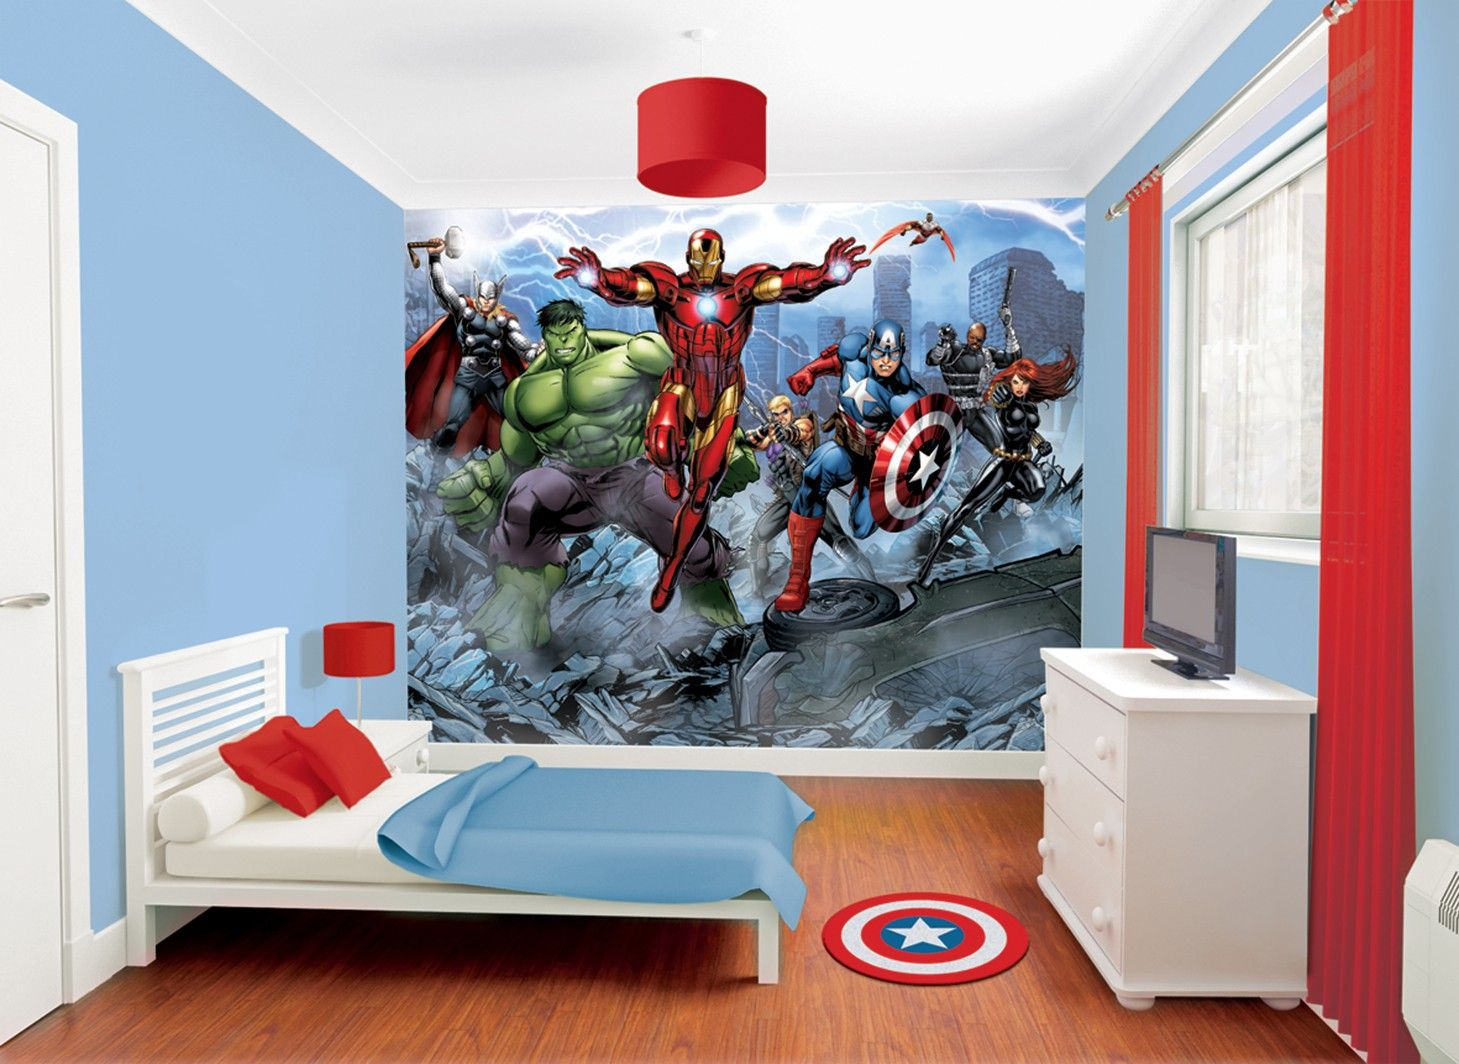 Marvel Themed Room Marvel Avengers Wallpaper Murals.the Boys Need This For Their